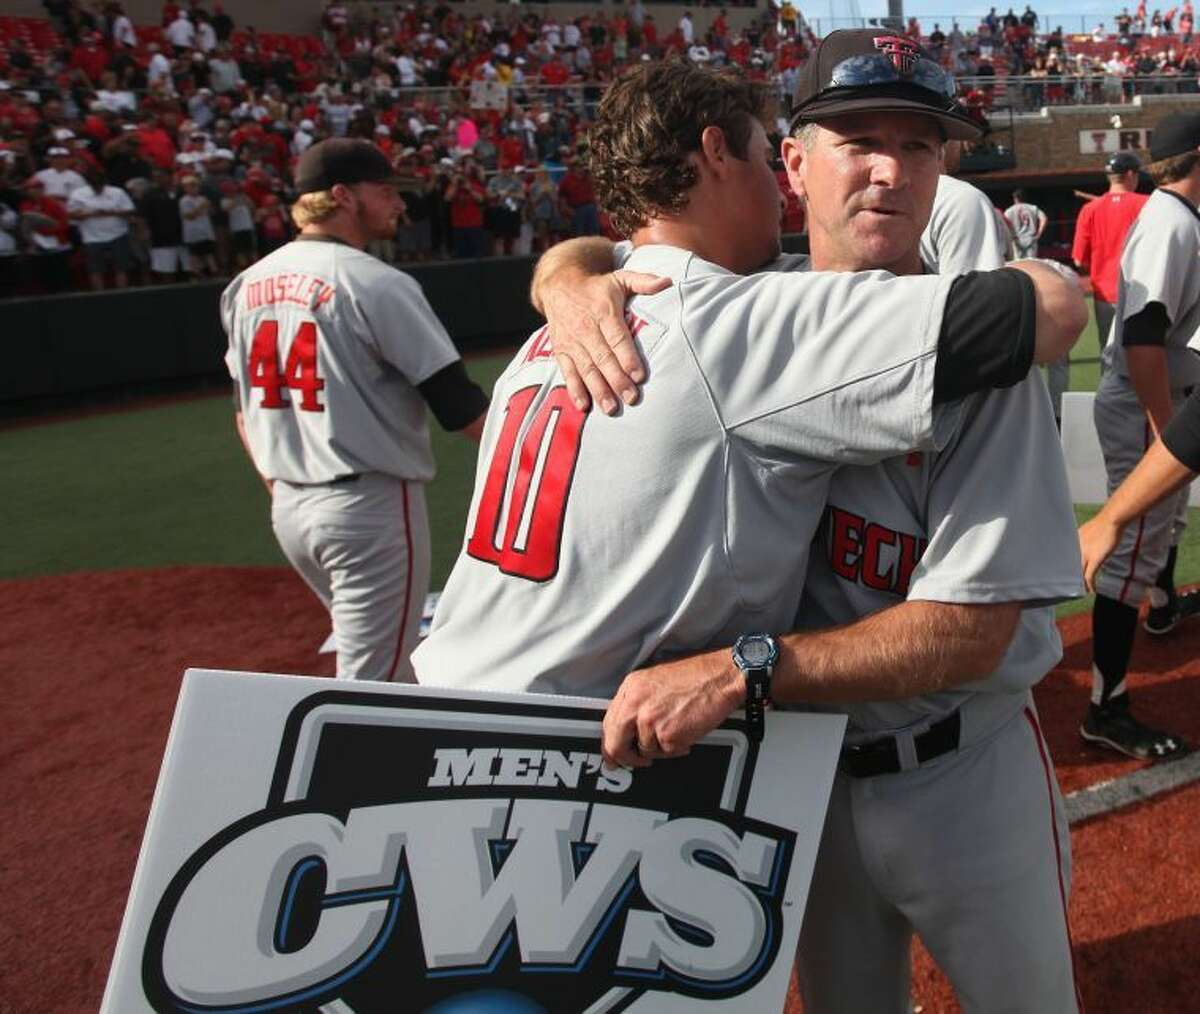 Texas Tech's Tyler Neslony (10) hugs head coach Tim Tadlock after a win over College of Charleston in an NCAA college baseball Super Regional tournament game in Lubbock Sunday, June 8, 2014. Texas Tech advanced to the College World Series for the first time with a 1-0 victory over College of Charleston. (AP Photo/Lubbock Avalanche Journal,Zach Long)